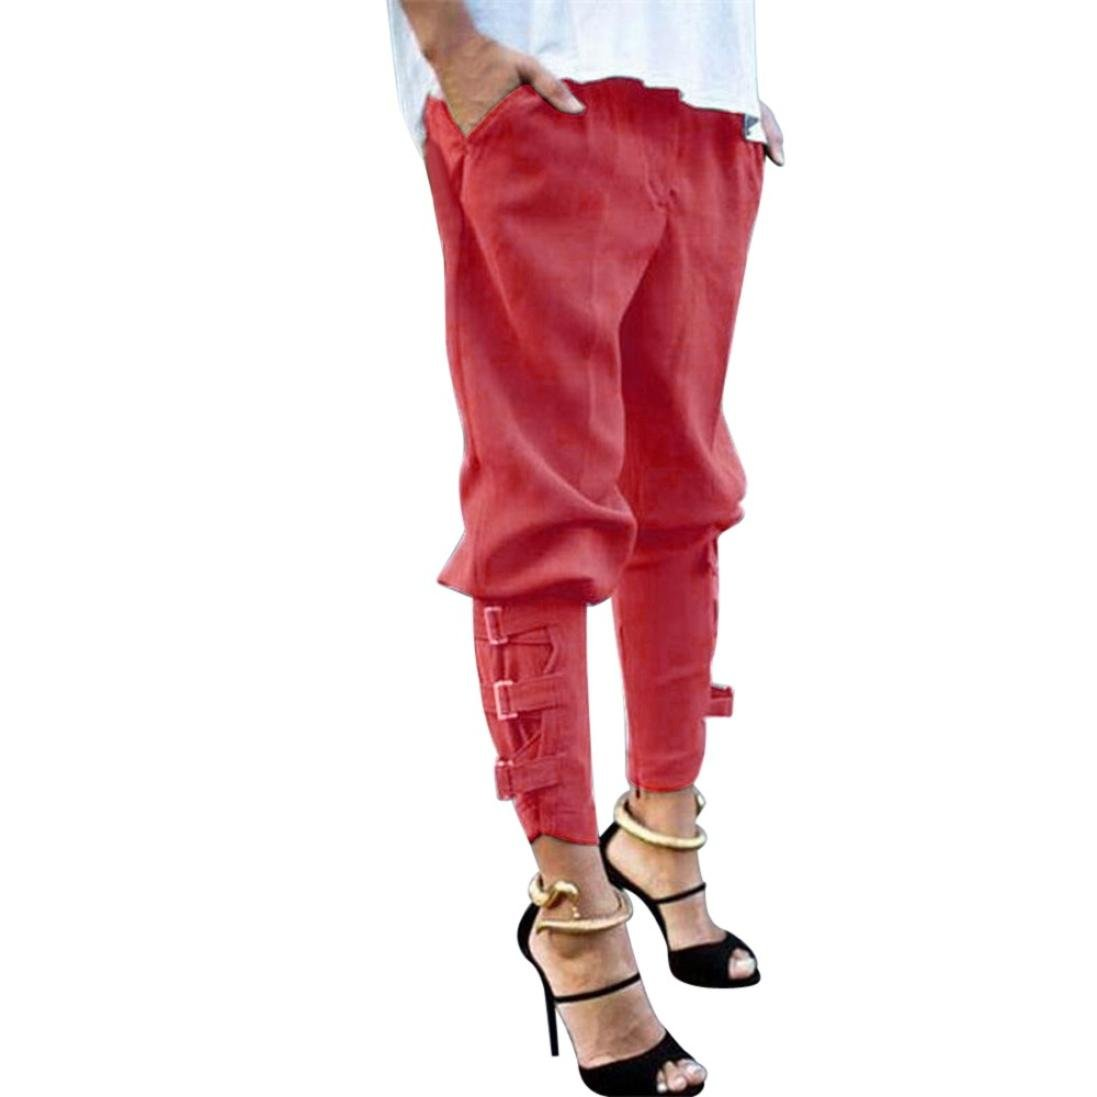 Womens Casual Harem Baggy Hip Hop Dance Jogging Sweat Pants Slacks Trousers (XL, Red)